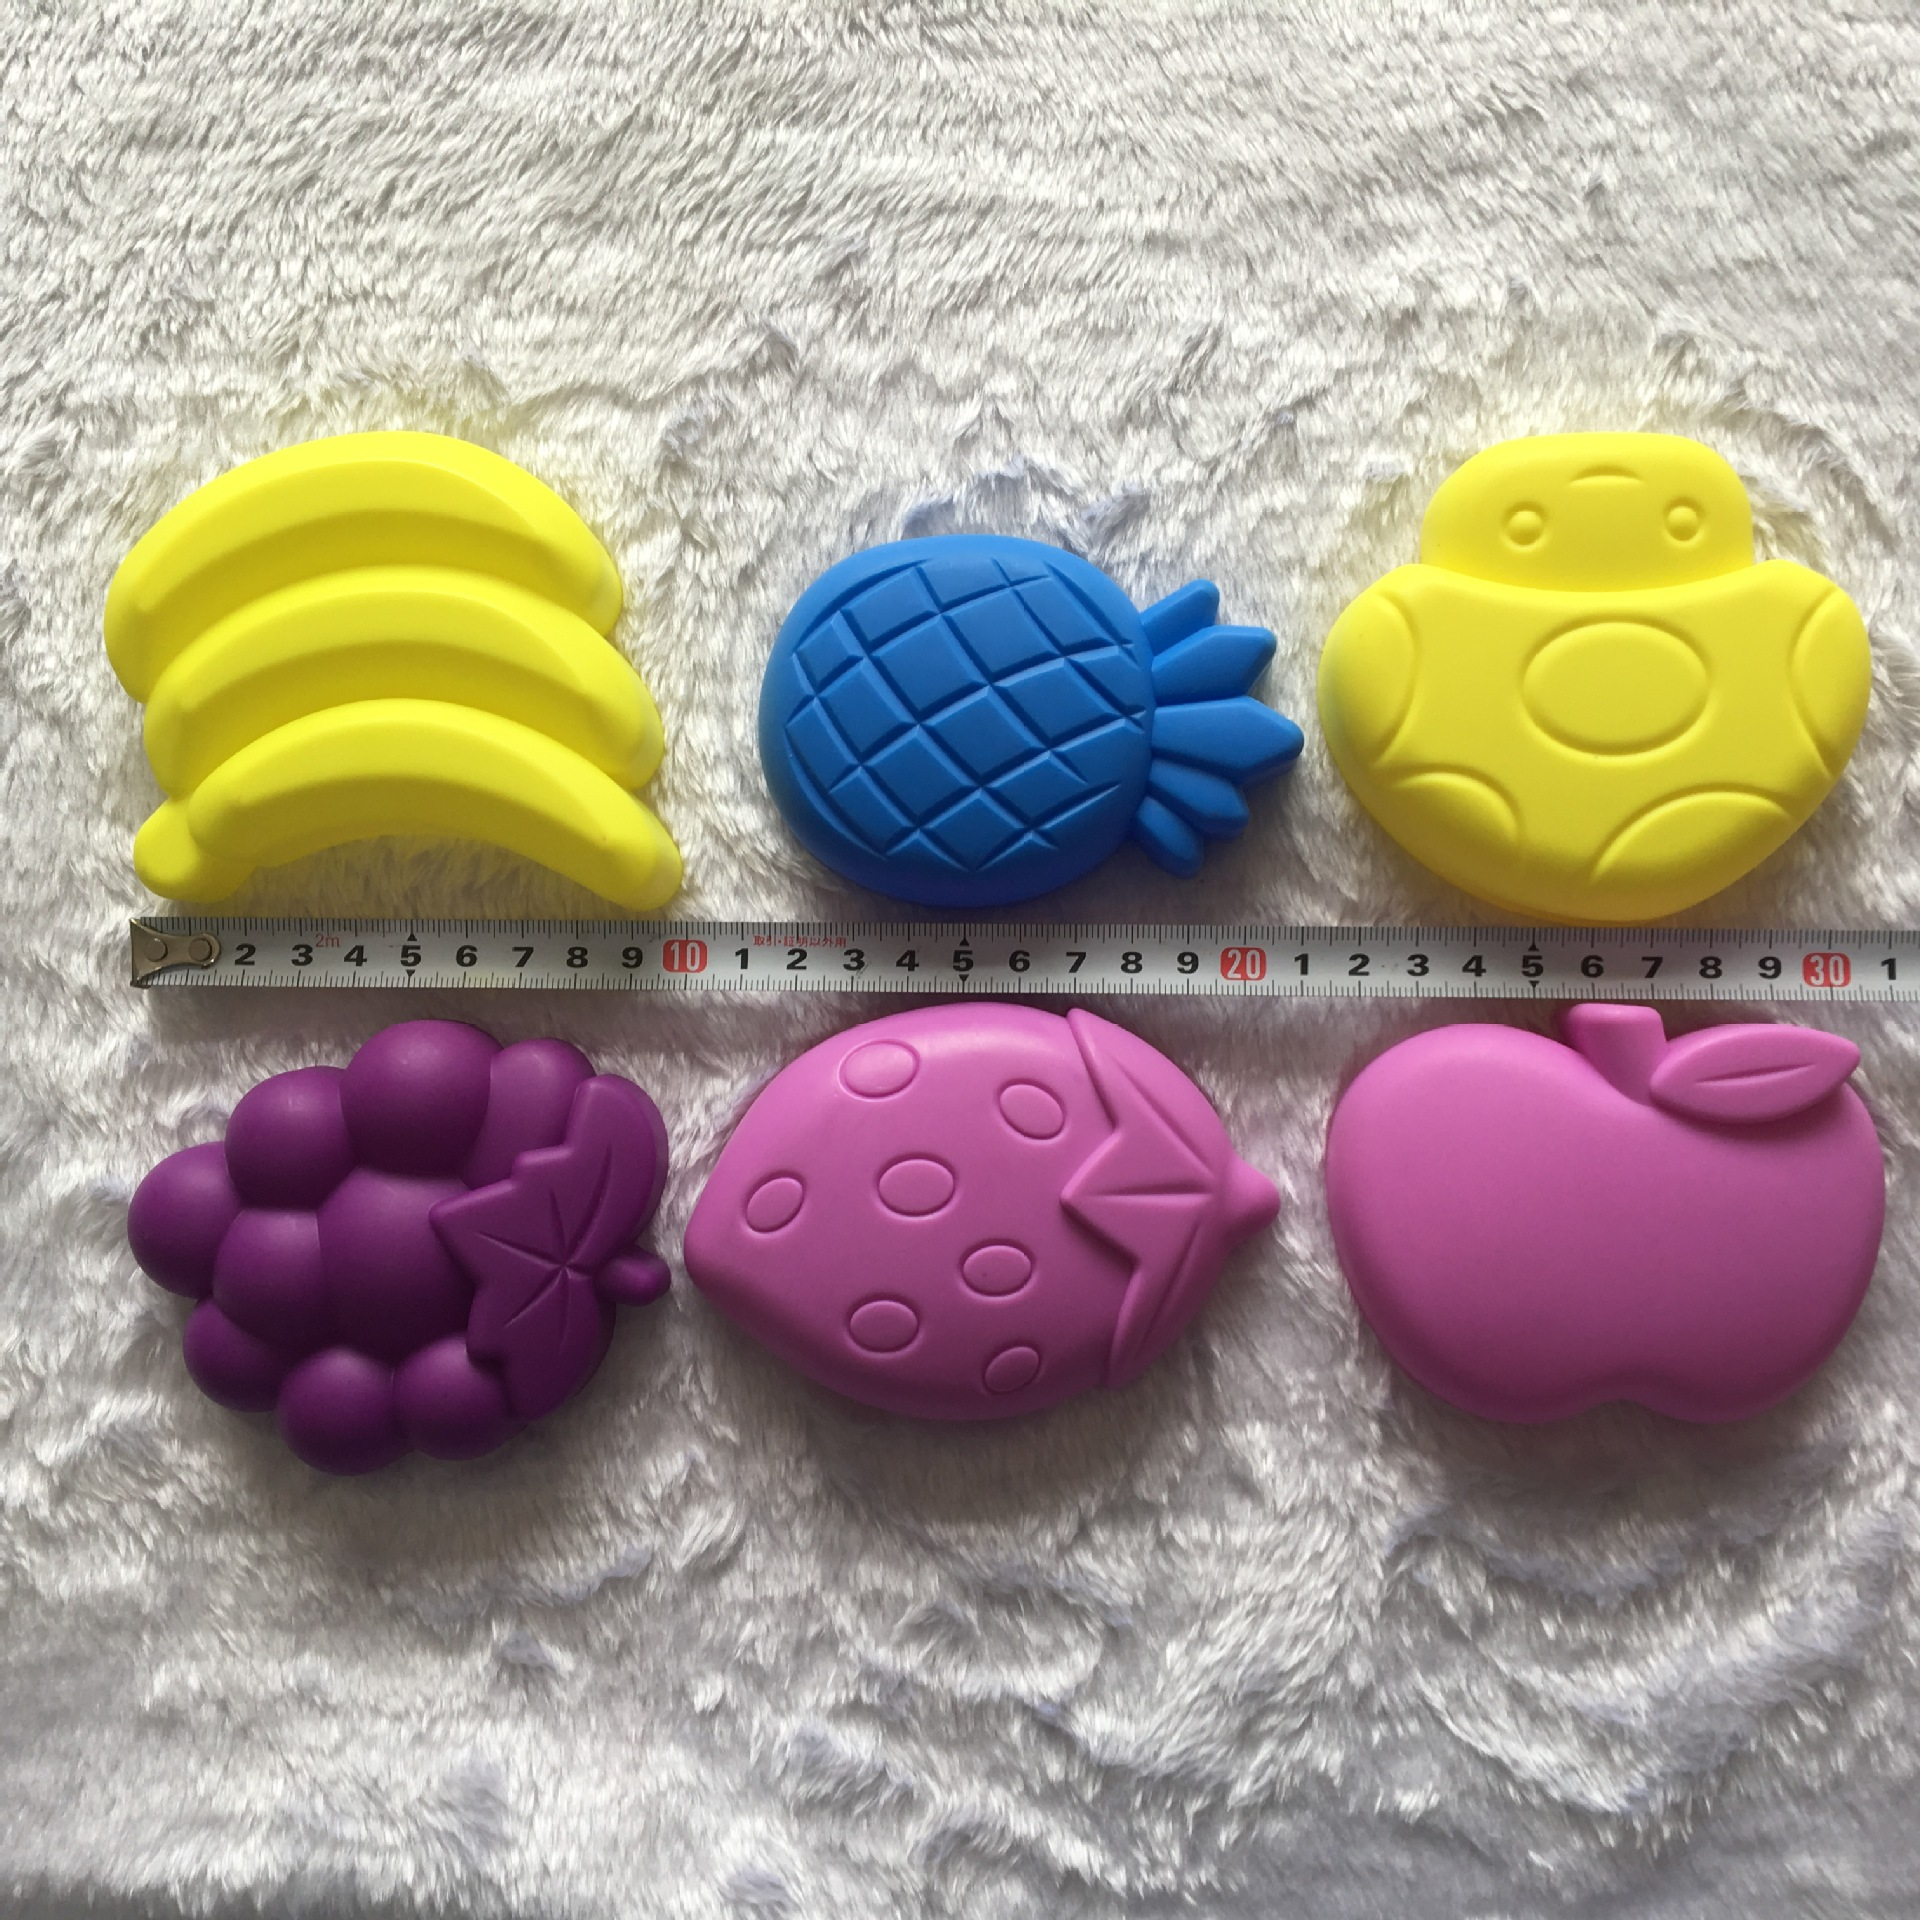 6pcs Child Kid Model Building Kits Portable Fruit Sand Clay Mold Building Decoration Beach Sand Toy